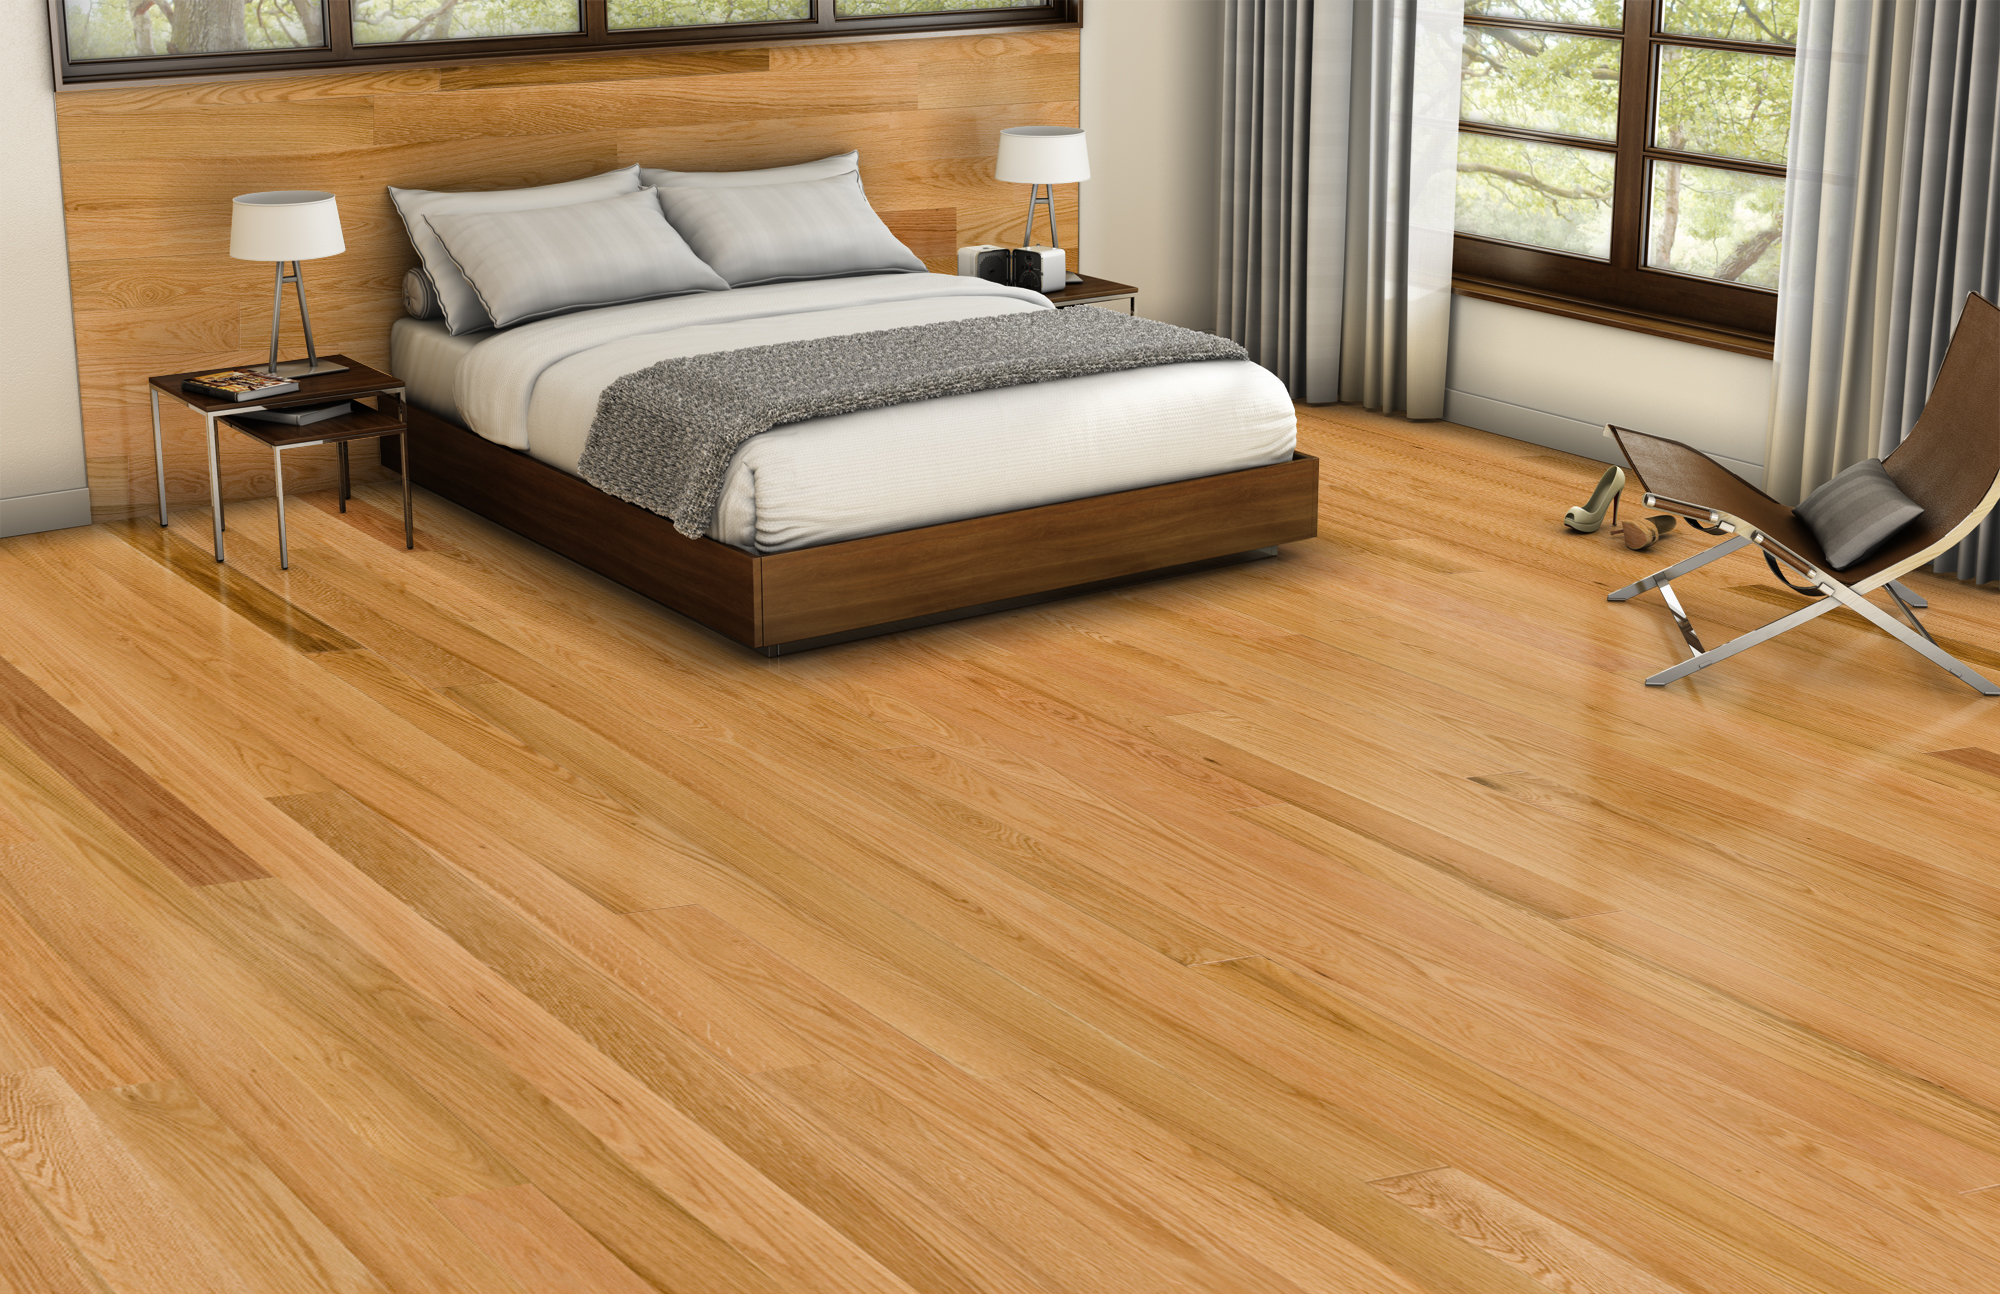 Red Oak Hardwood Flooring Natural Exclusif Ambiance Lauzon